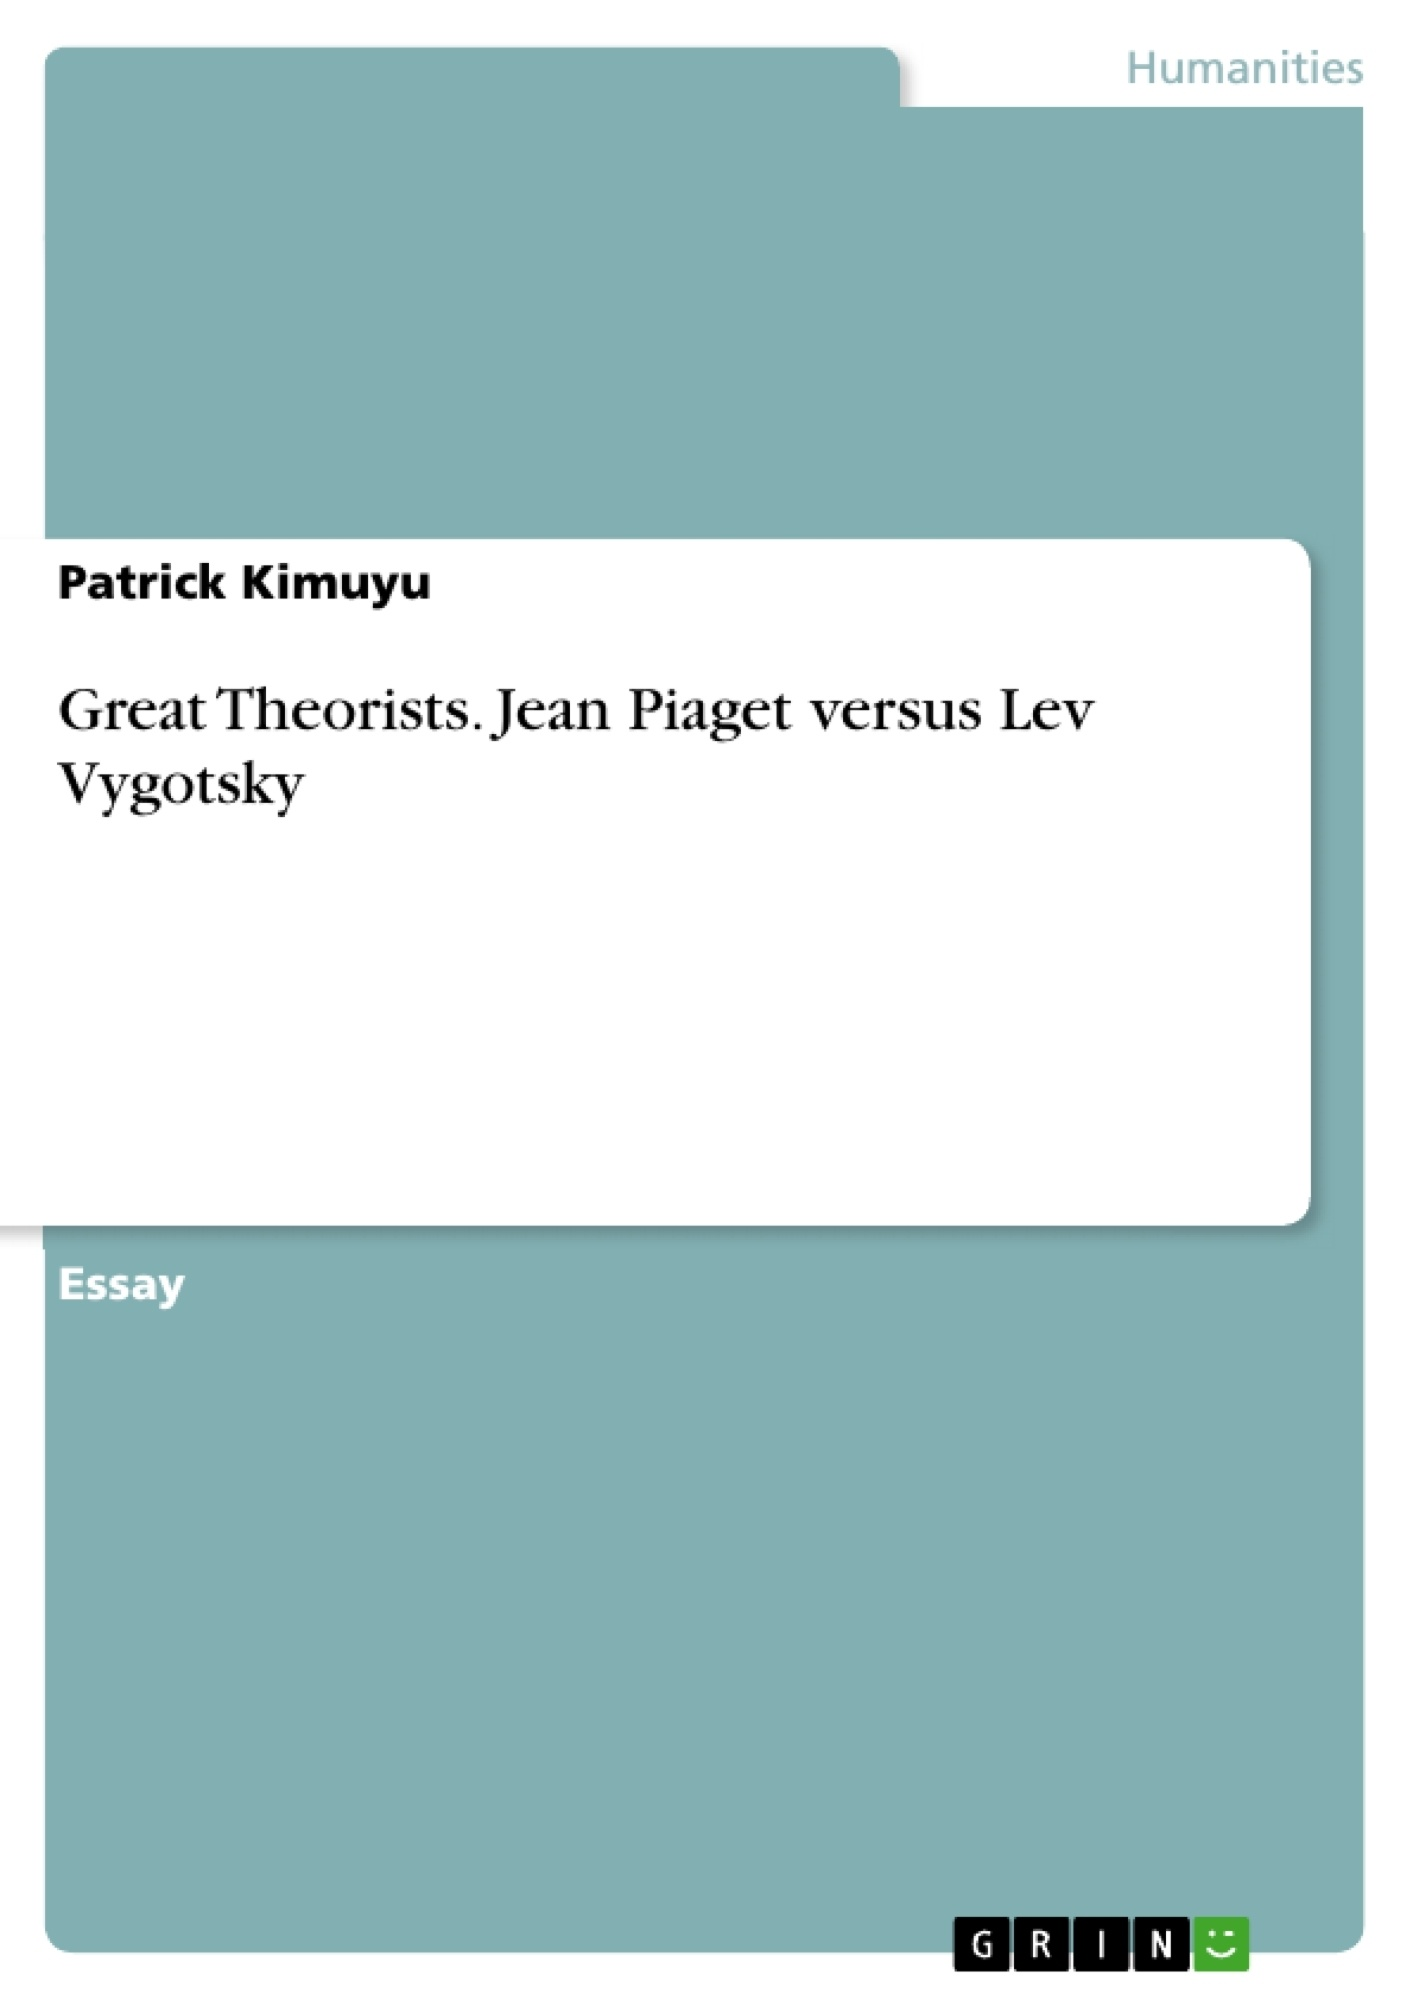 psychology jean piaget essay Essays, term papers, book reports, research papers on psychology free papers and essays on jean piaget we provide free model essays on psychology, jean piaget.